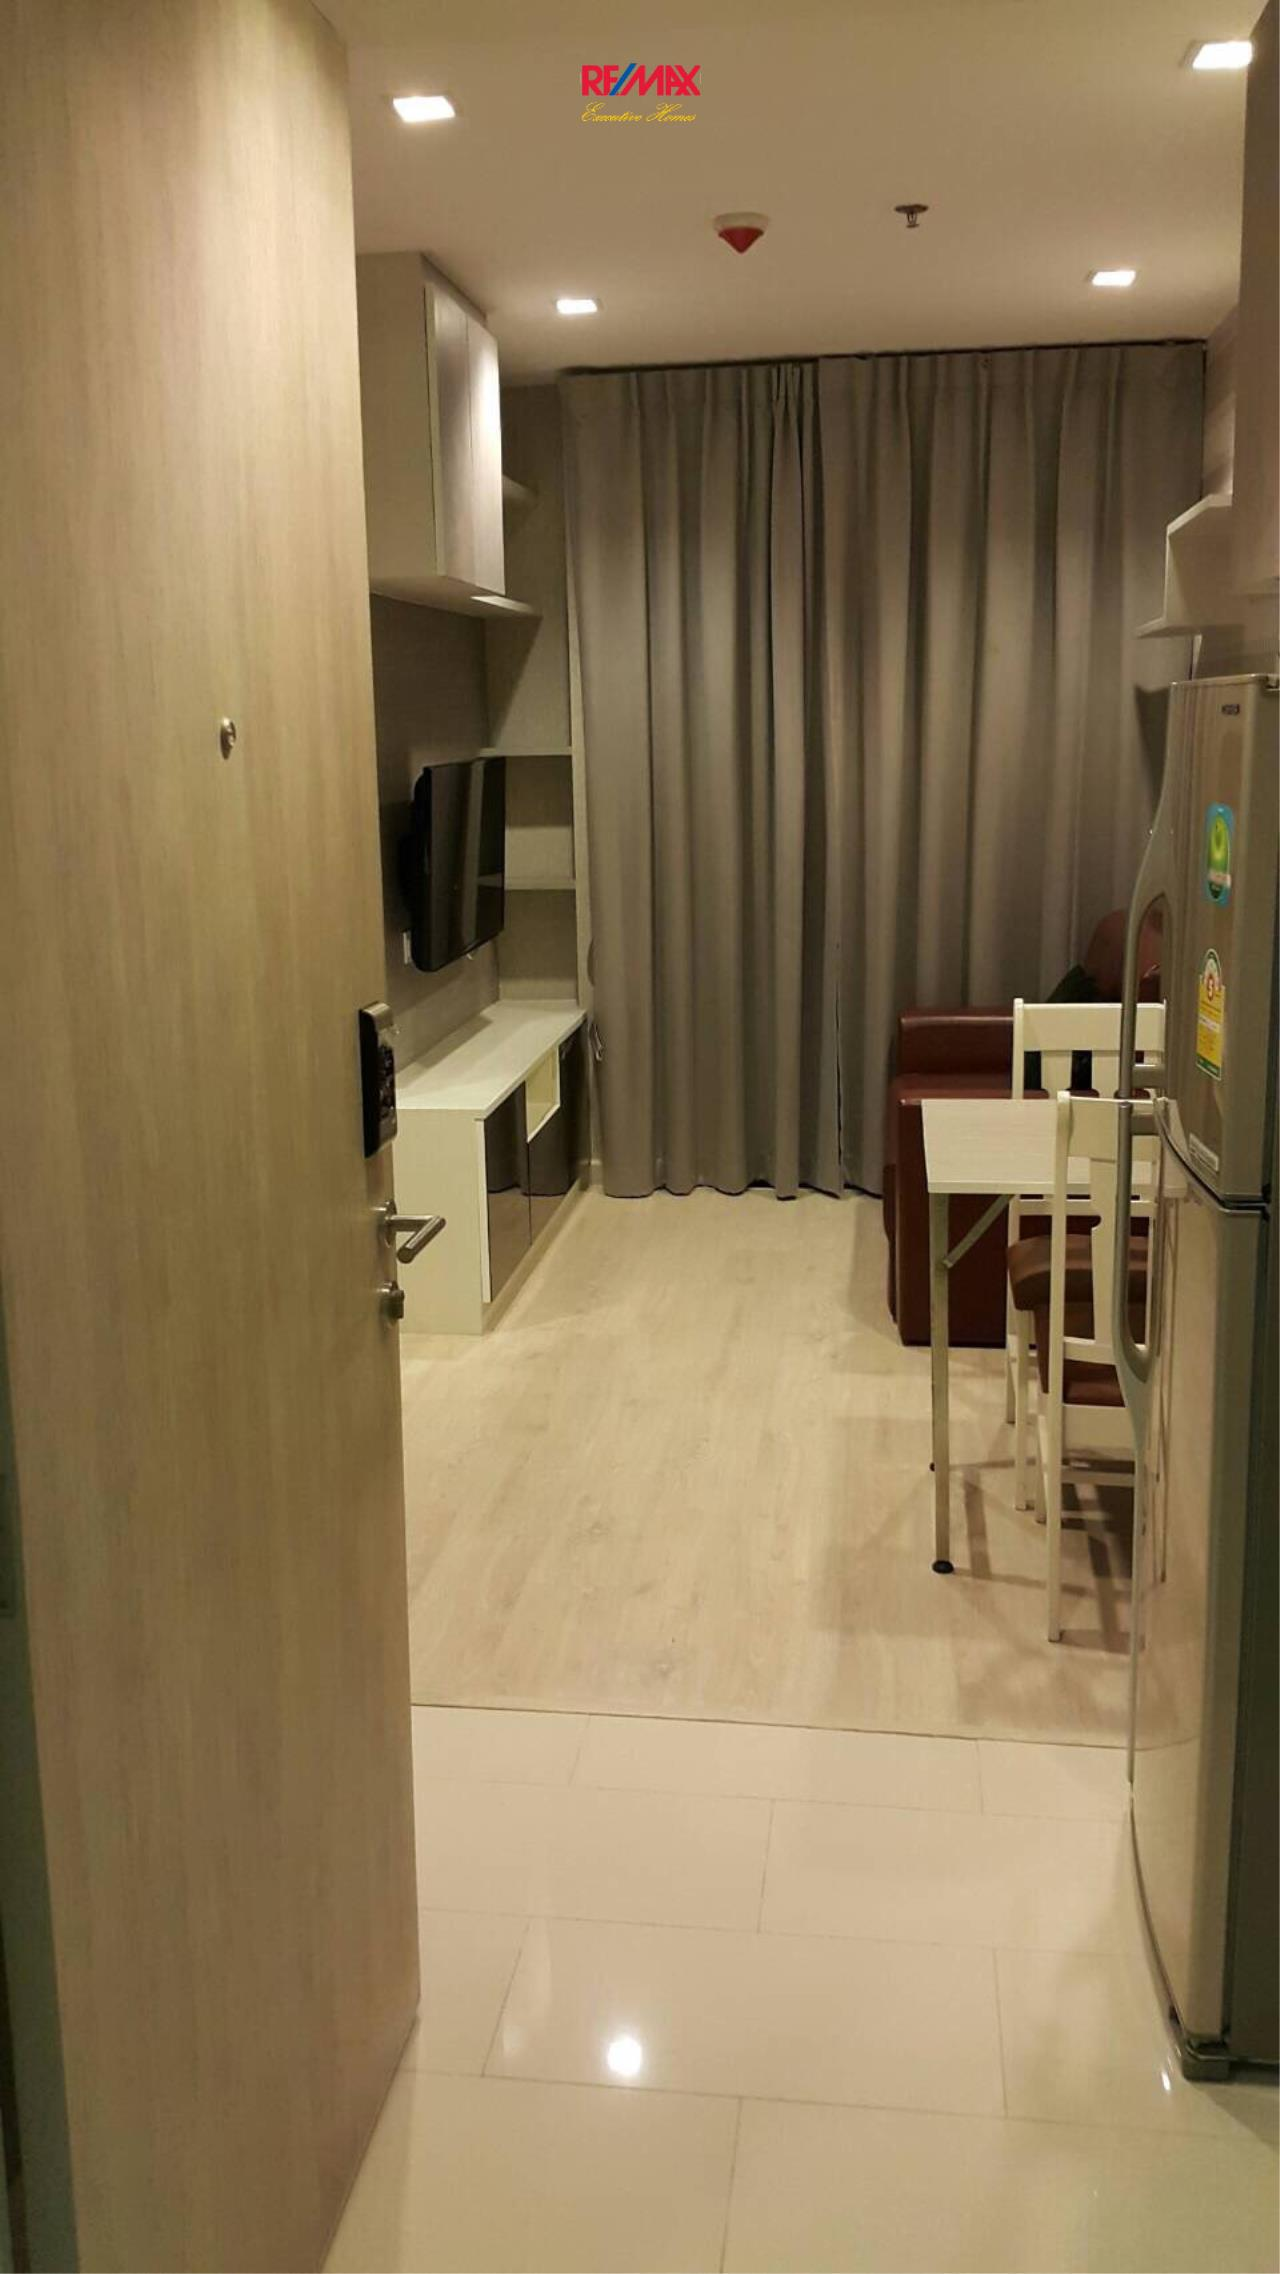 RE/MAX Executive Homes Agency's Nice 1 Bedroom for Rent Ideo Mobi Sathorn 6